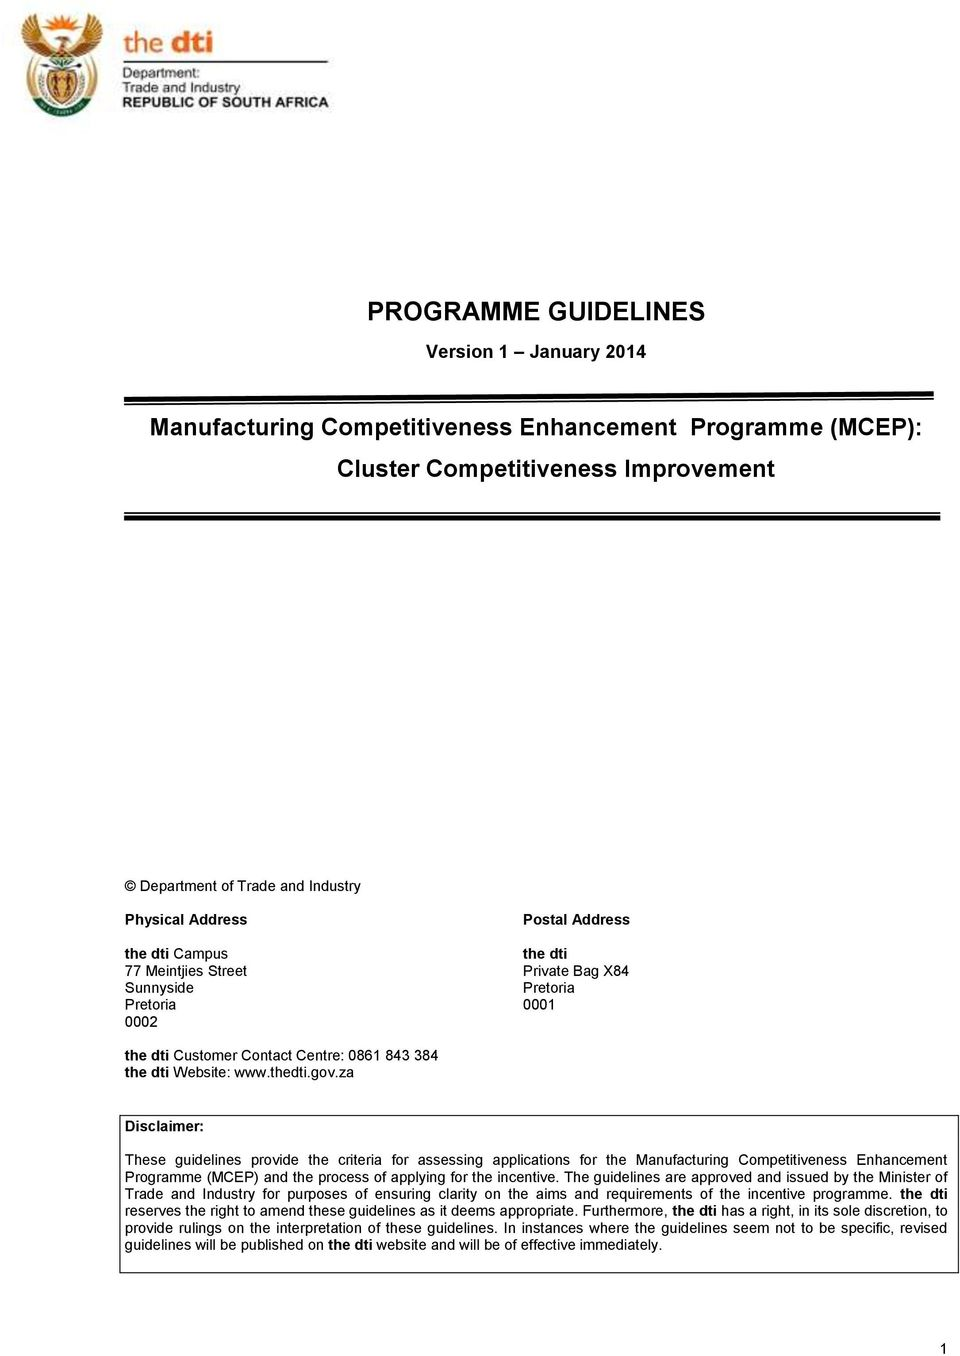 za Disclaimer: These guidelines provide the criteria for assessing applications for the Manufacturing Competitiveness Enhancement Programme (MCEP) and the process of applying for the incentive.